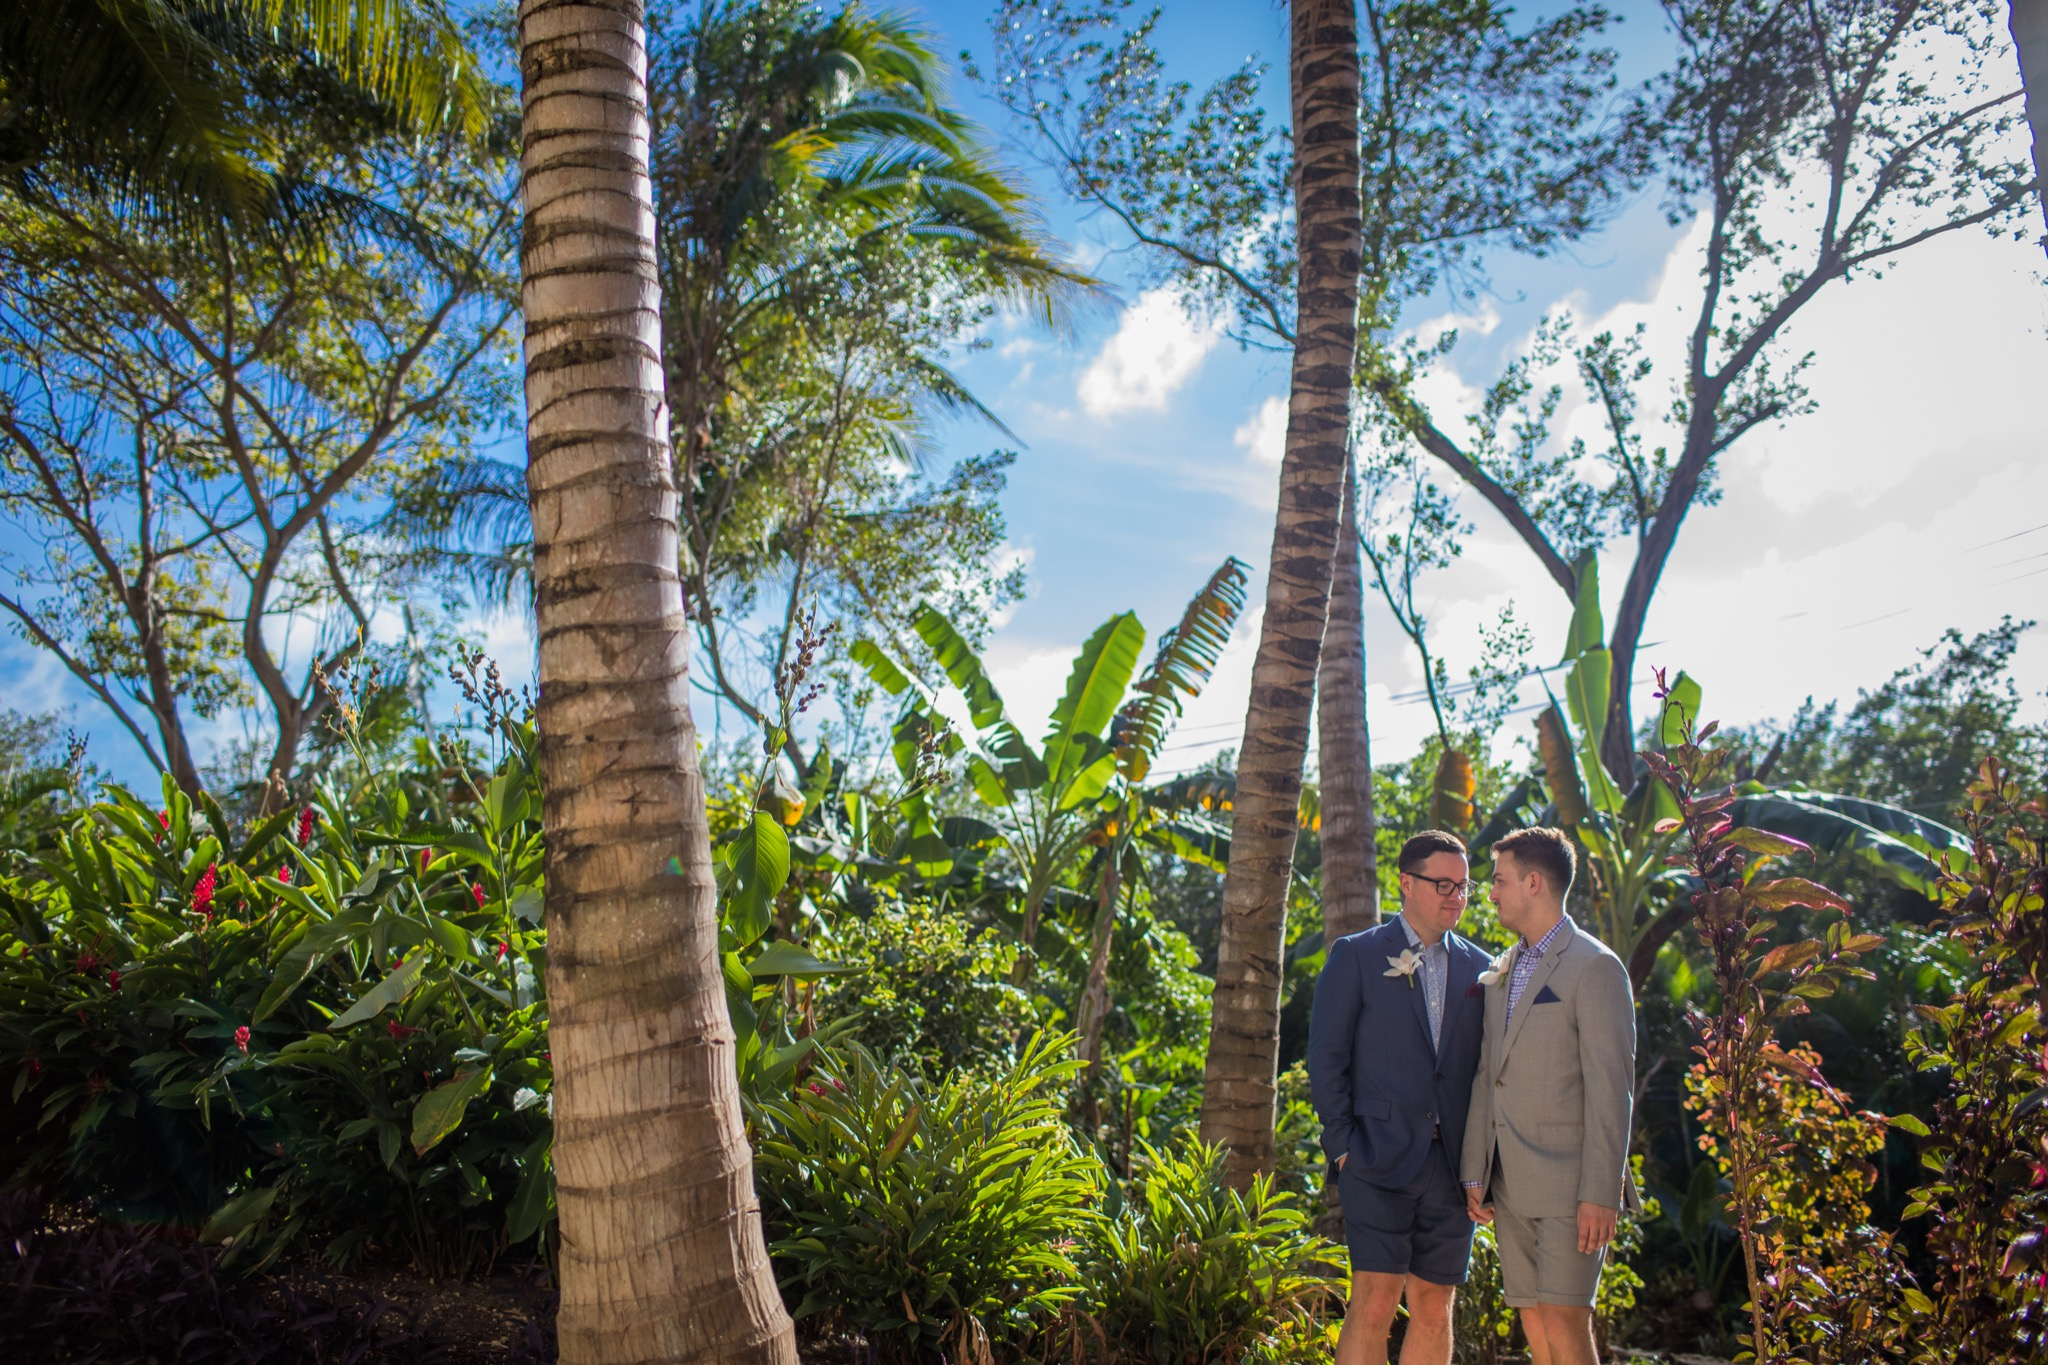 Same Sex Wedding in Playa del Carmen Cancun Paradise Photo Studio Two Grooms Holding Hands